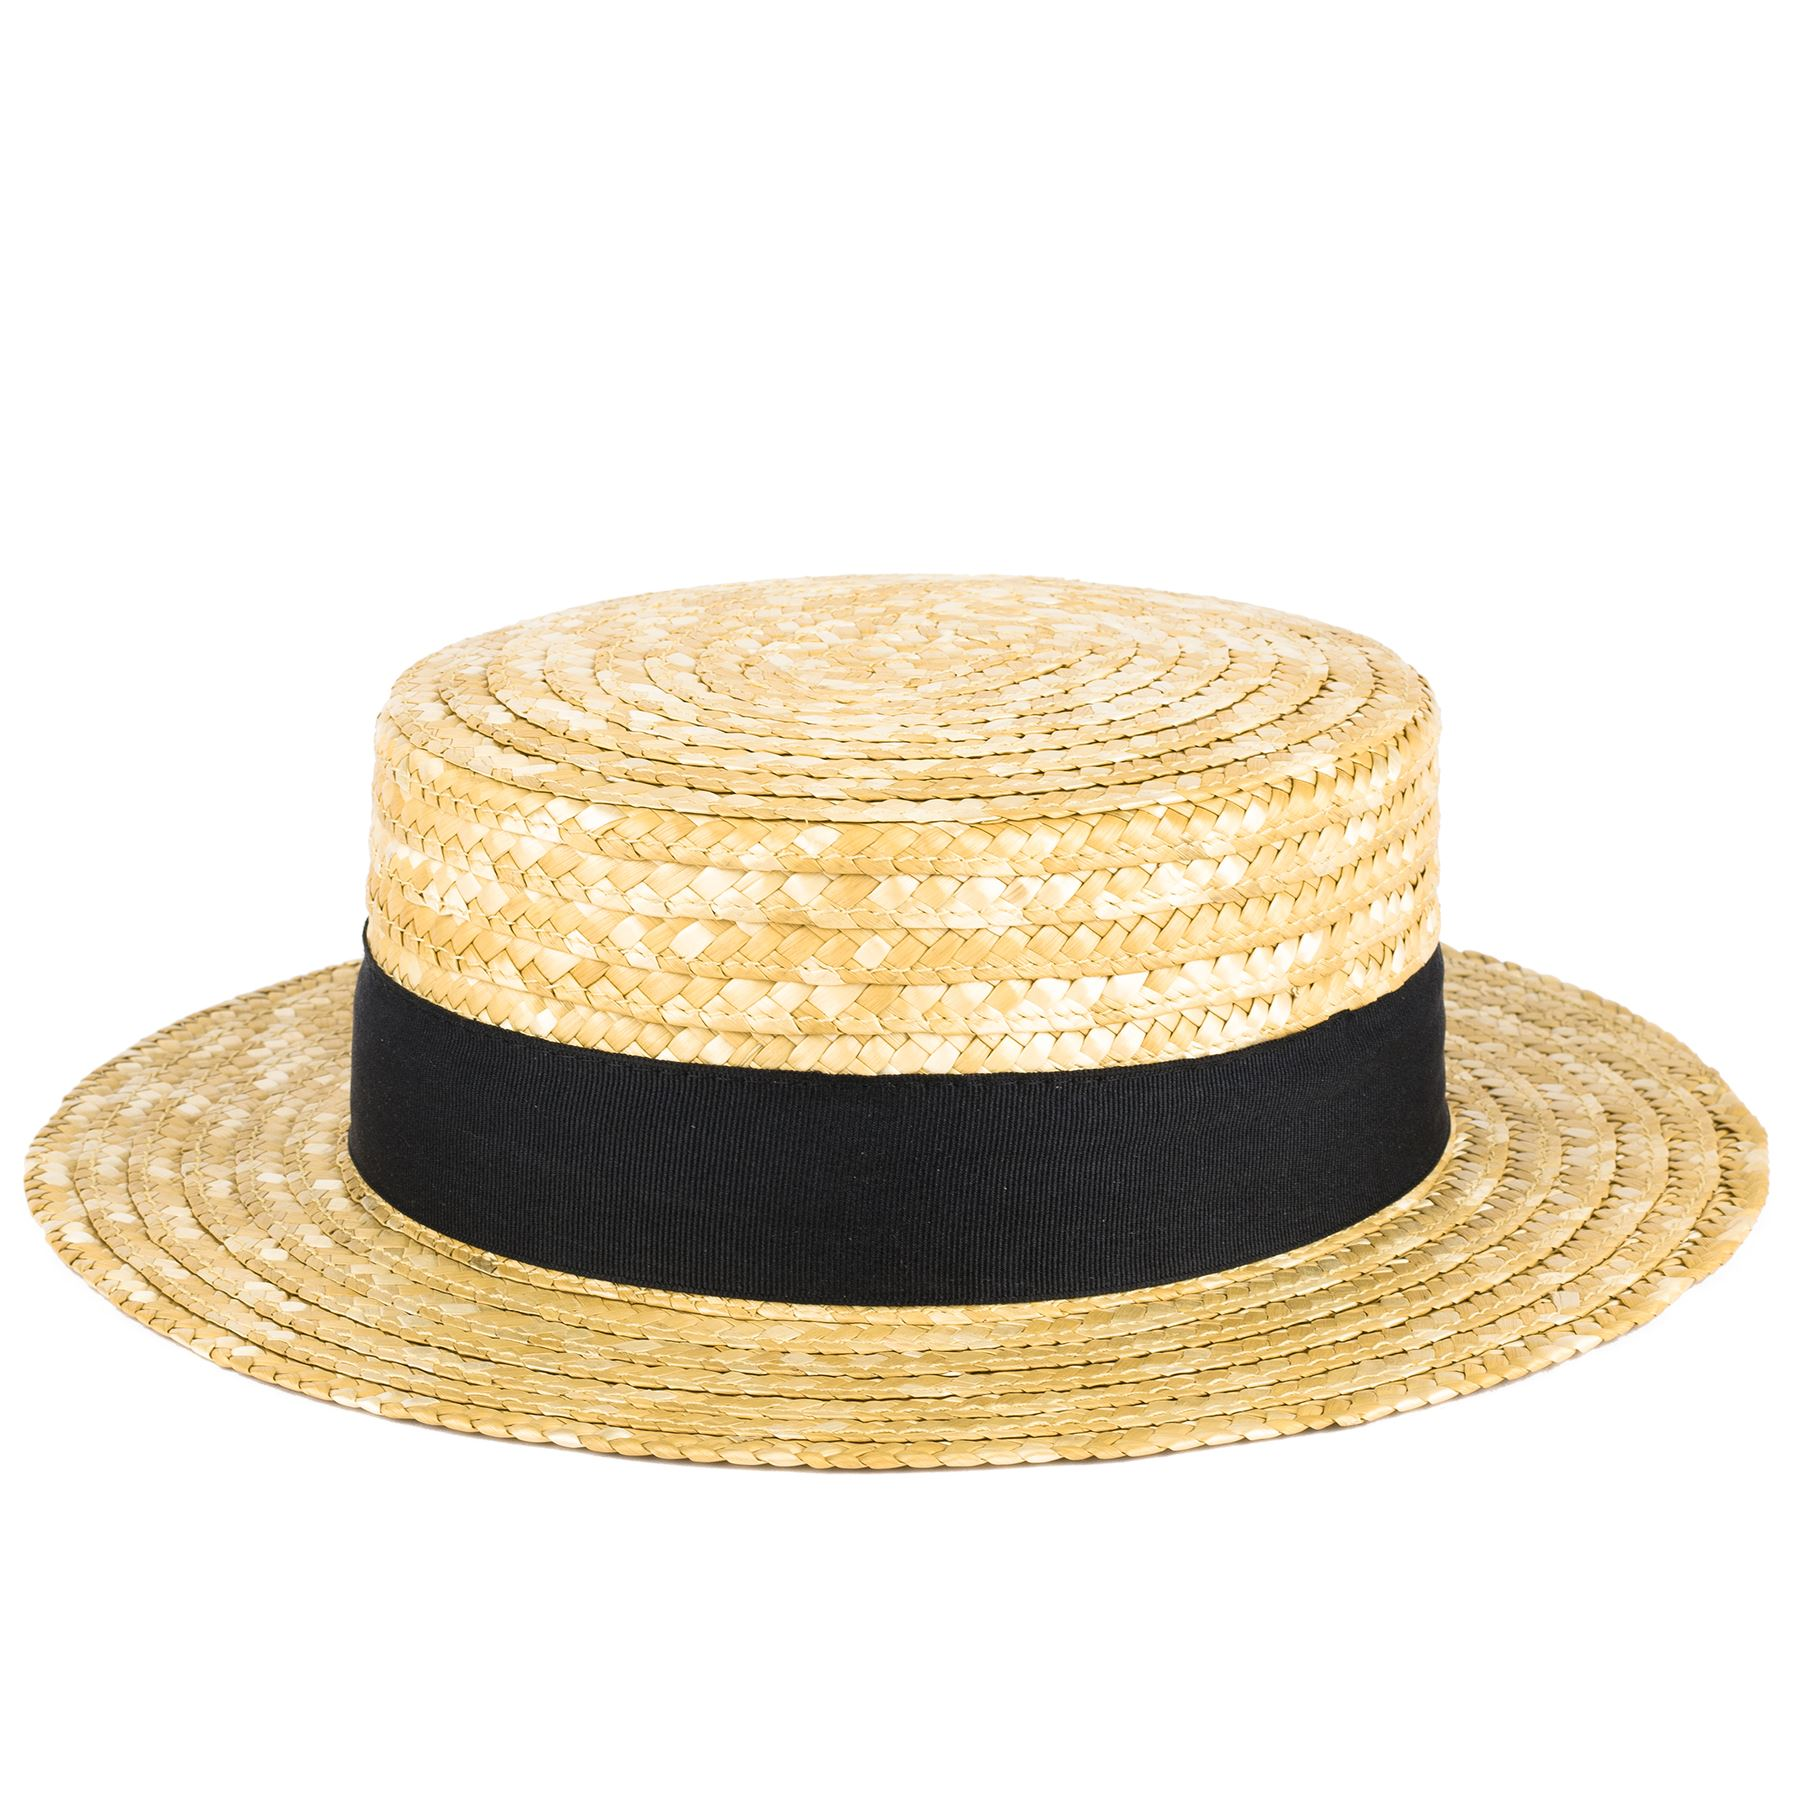 Find great deals on eBay for boater straw hat. Shop with confidence.